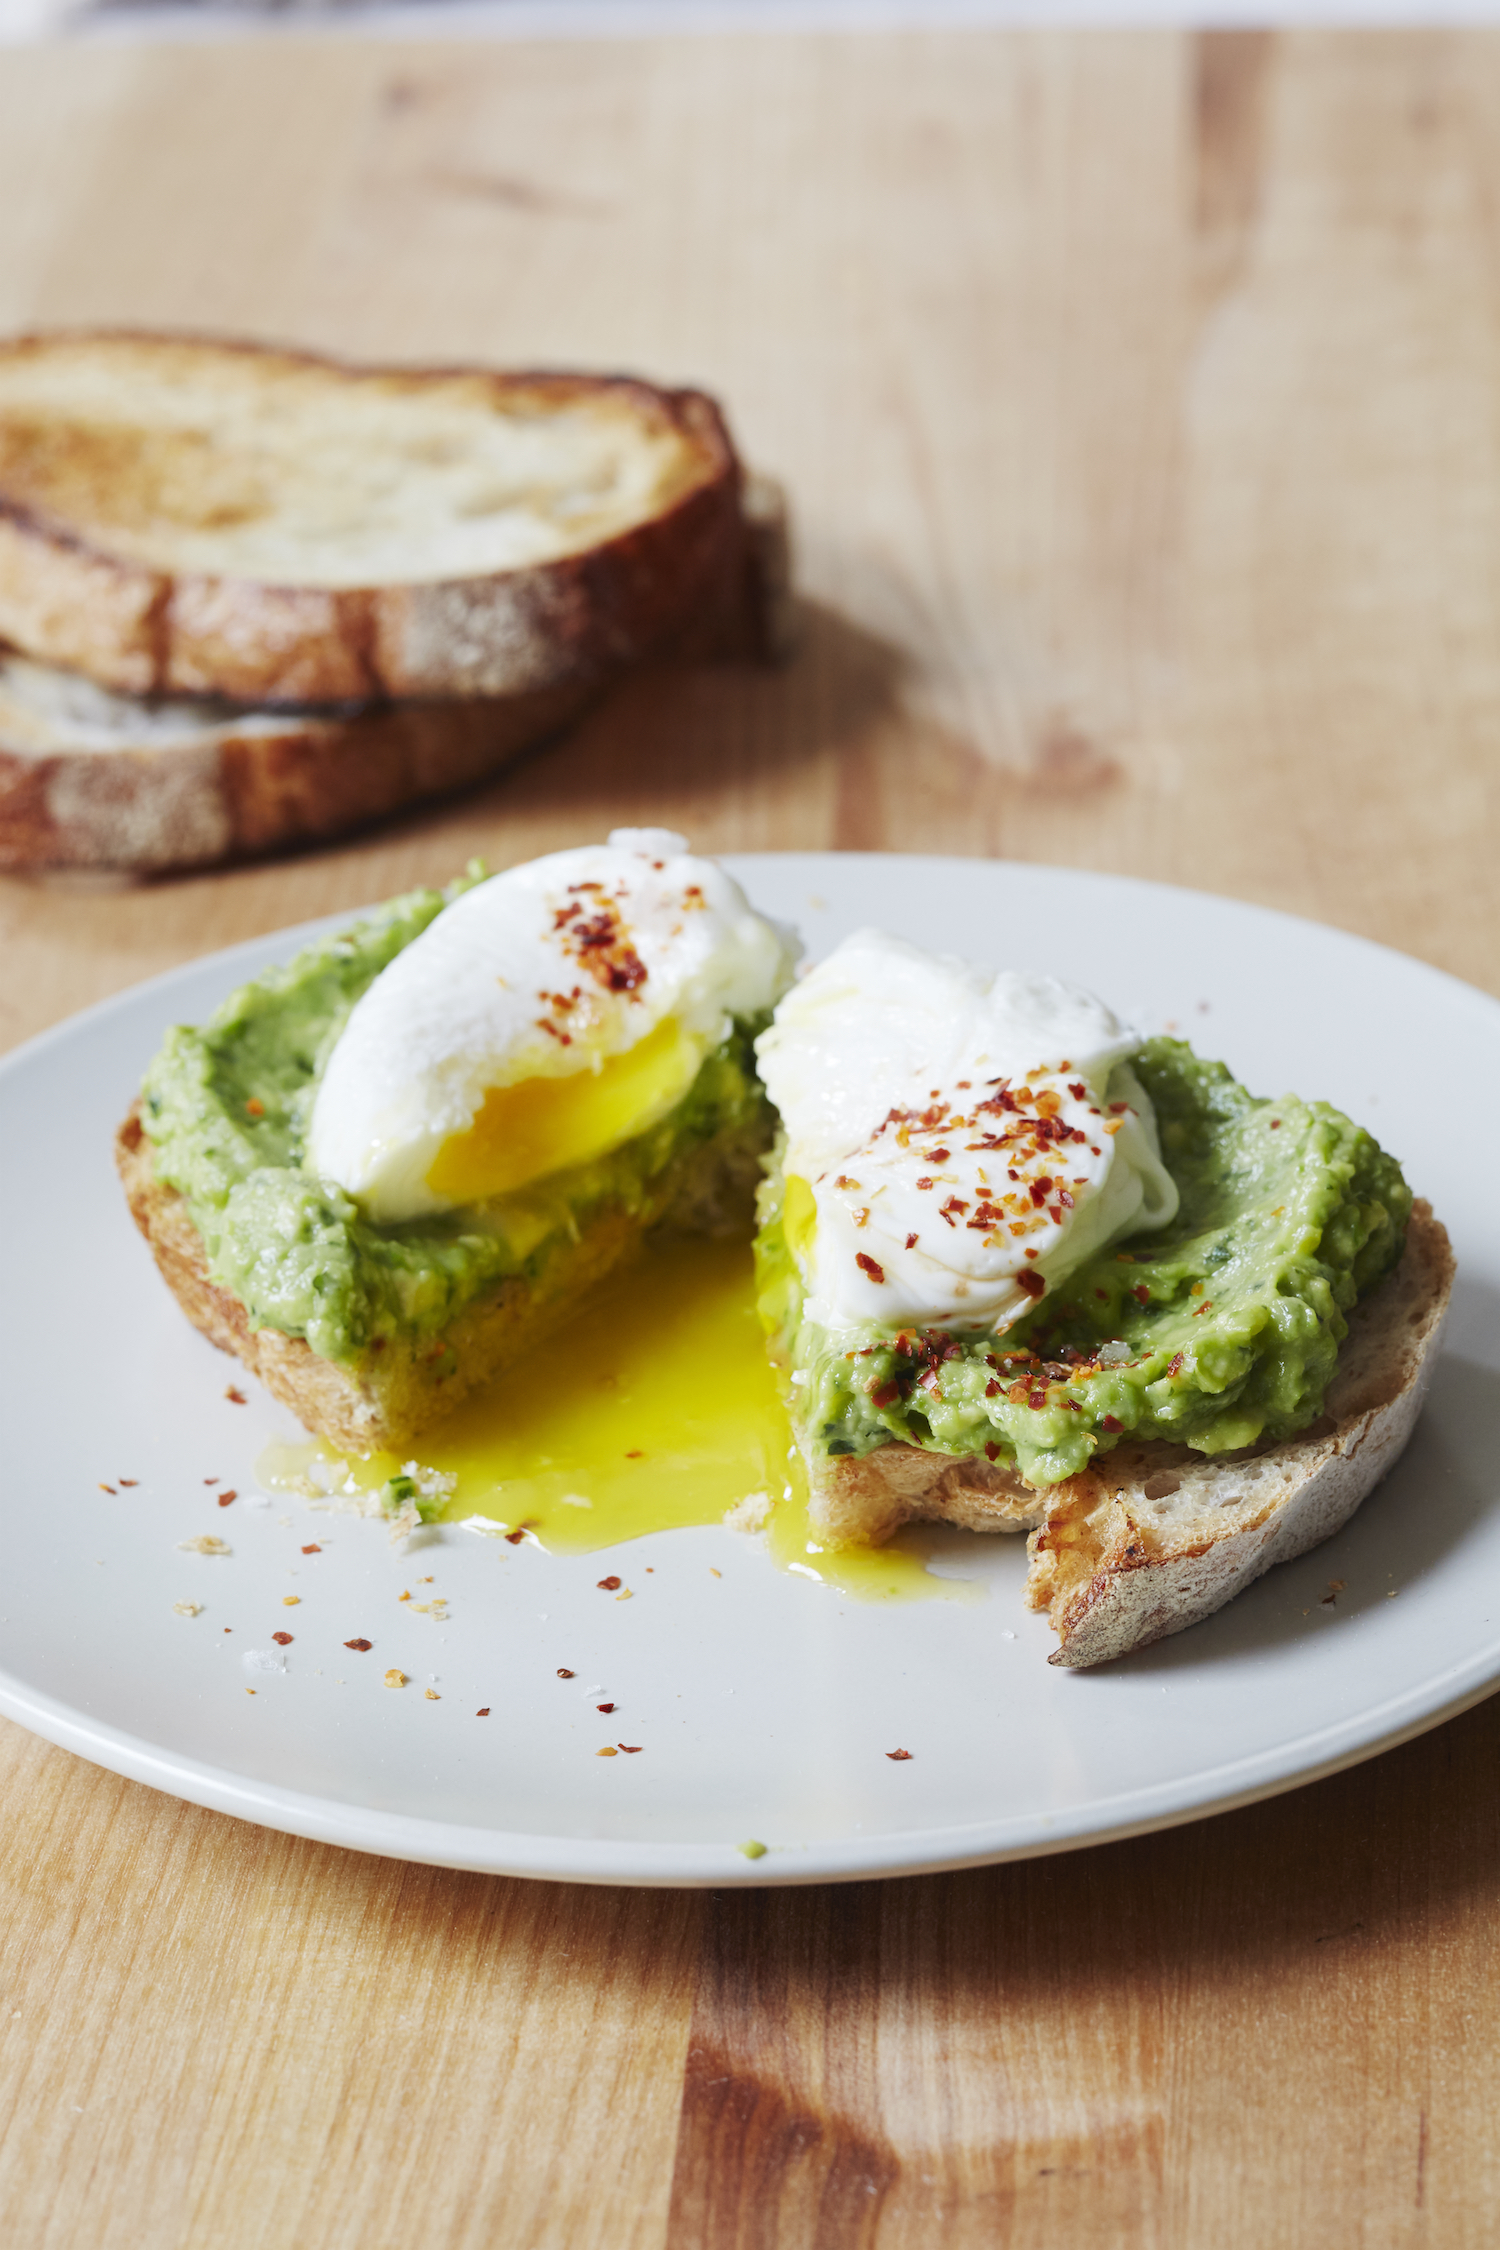 https://giadzy.com/posts/food/438561/sweet-pea-and-avocado-toast